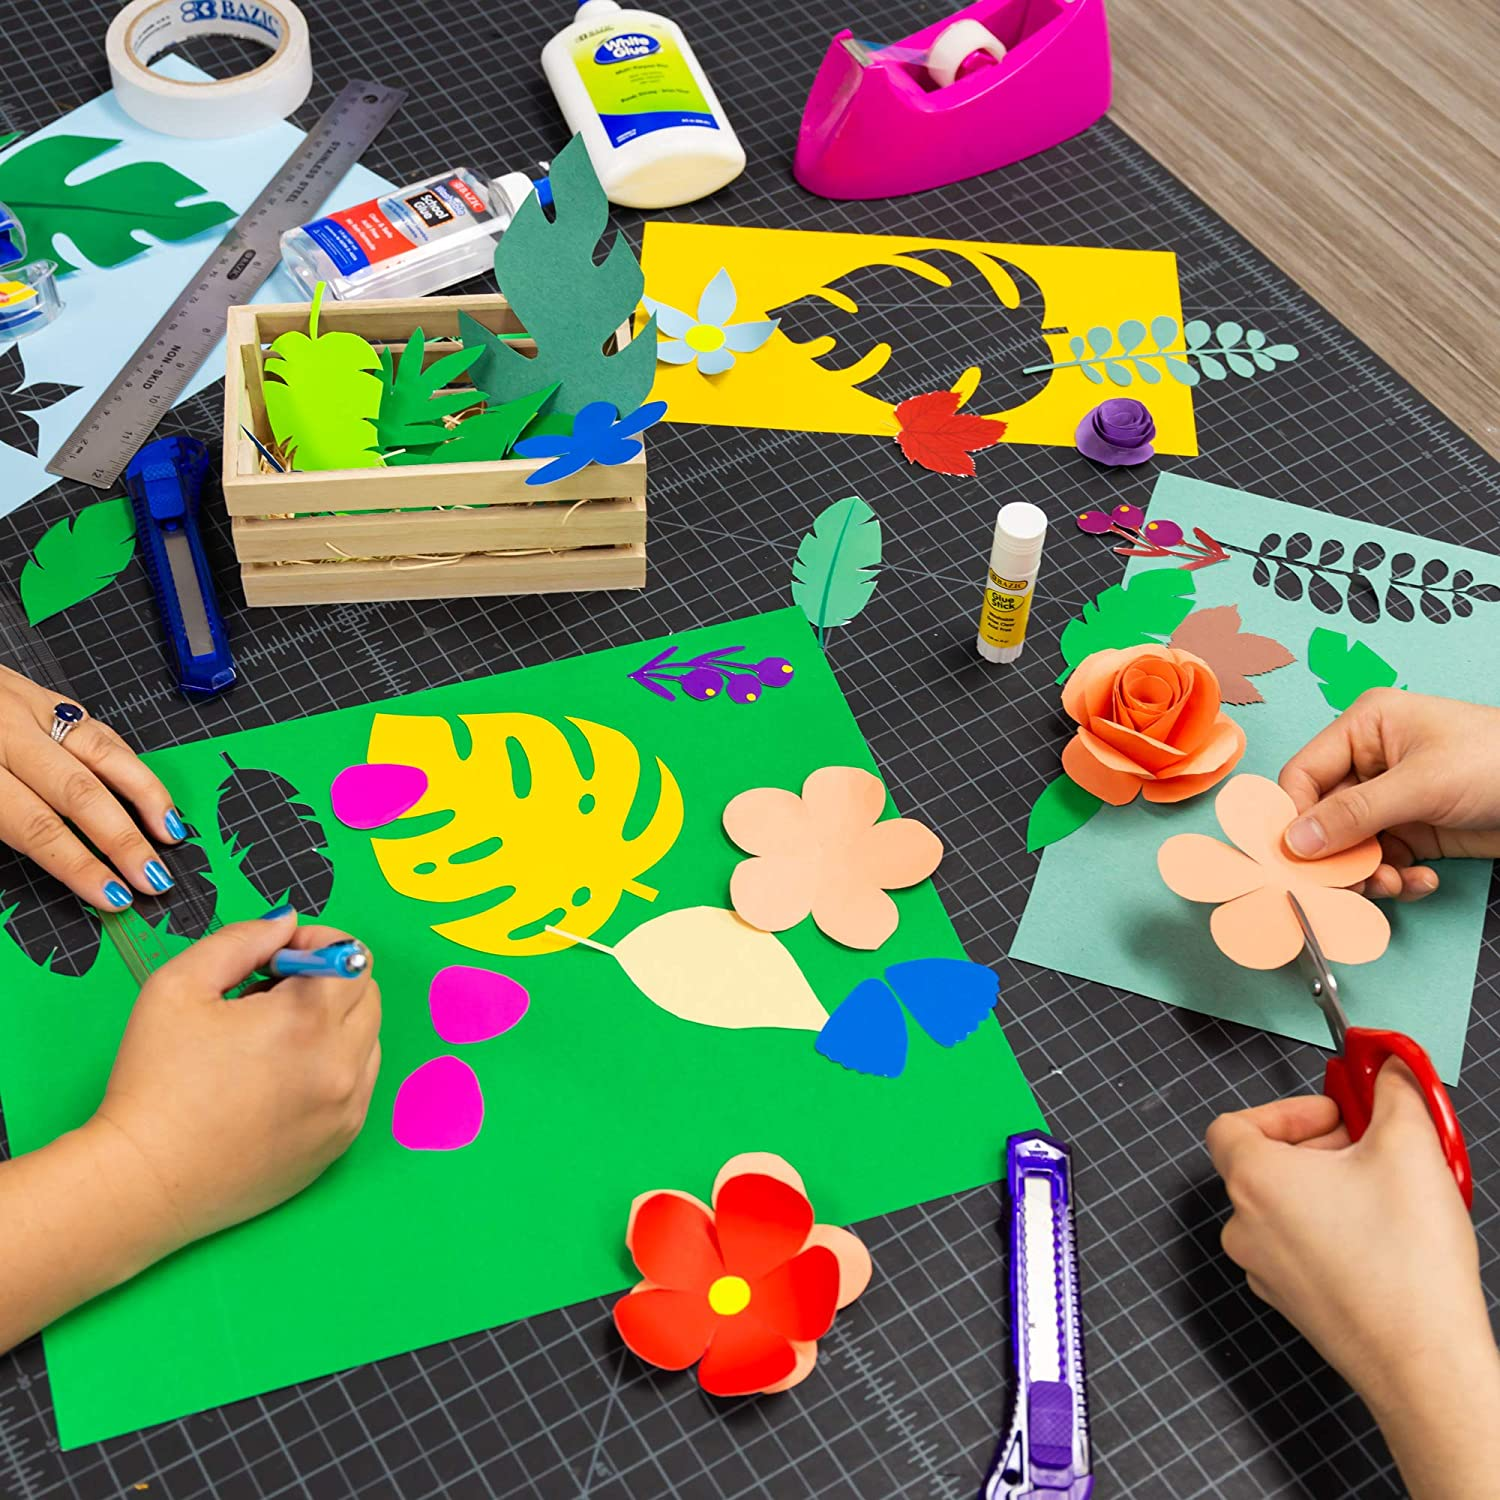 Gift for Toddler Kids Classrooms School Home DIY Projects Assorted Colors Great For Creative Draw Cut Glue Fold BAZIC 48 Sheets 9 X 12 Construction Paper Pad